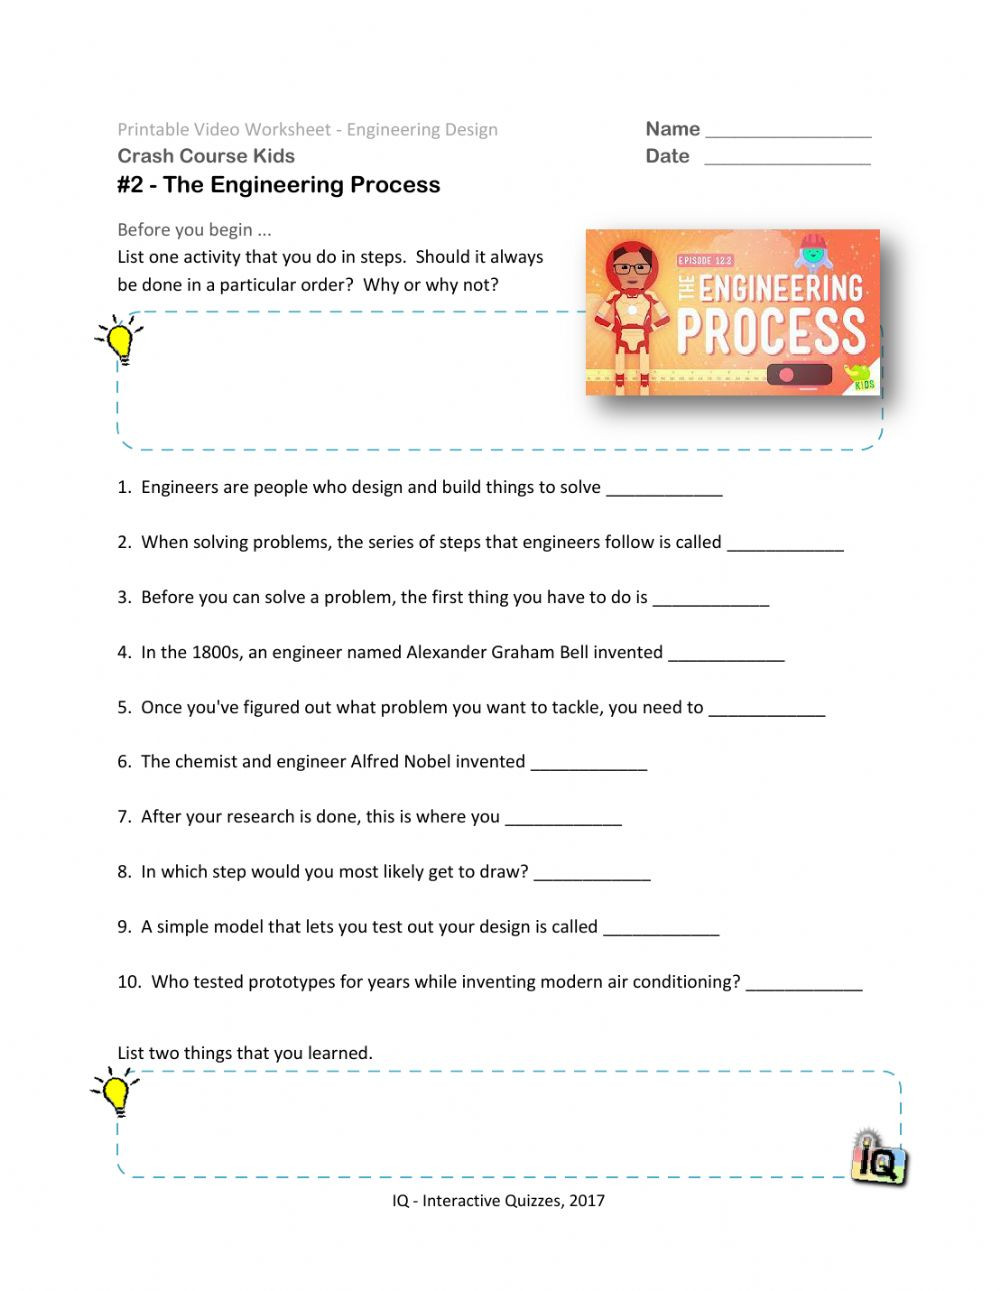 Engineering Design Process Worksheet 48 Crash Course the Engineering Process Video 2